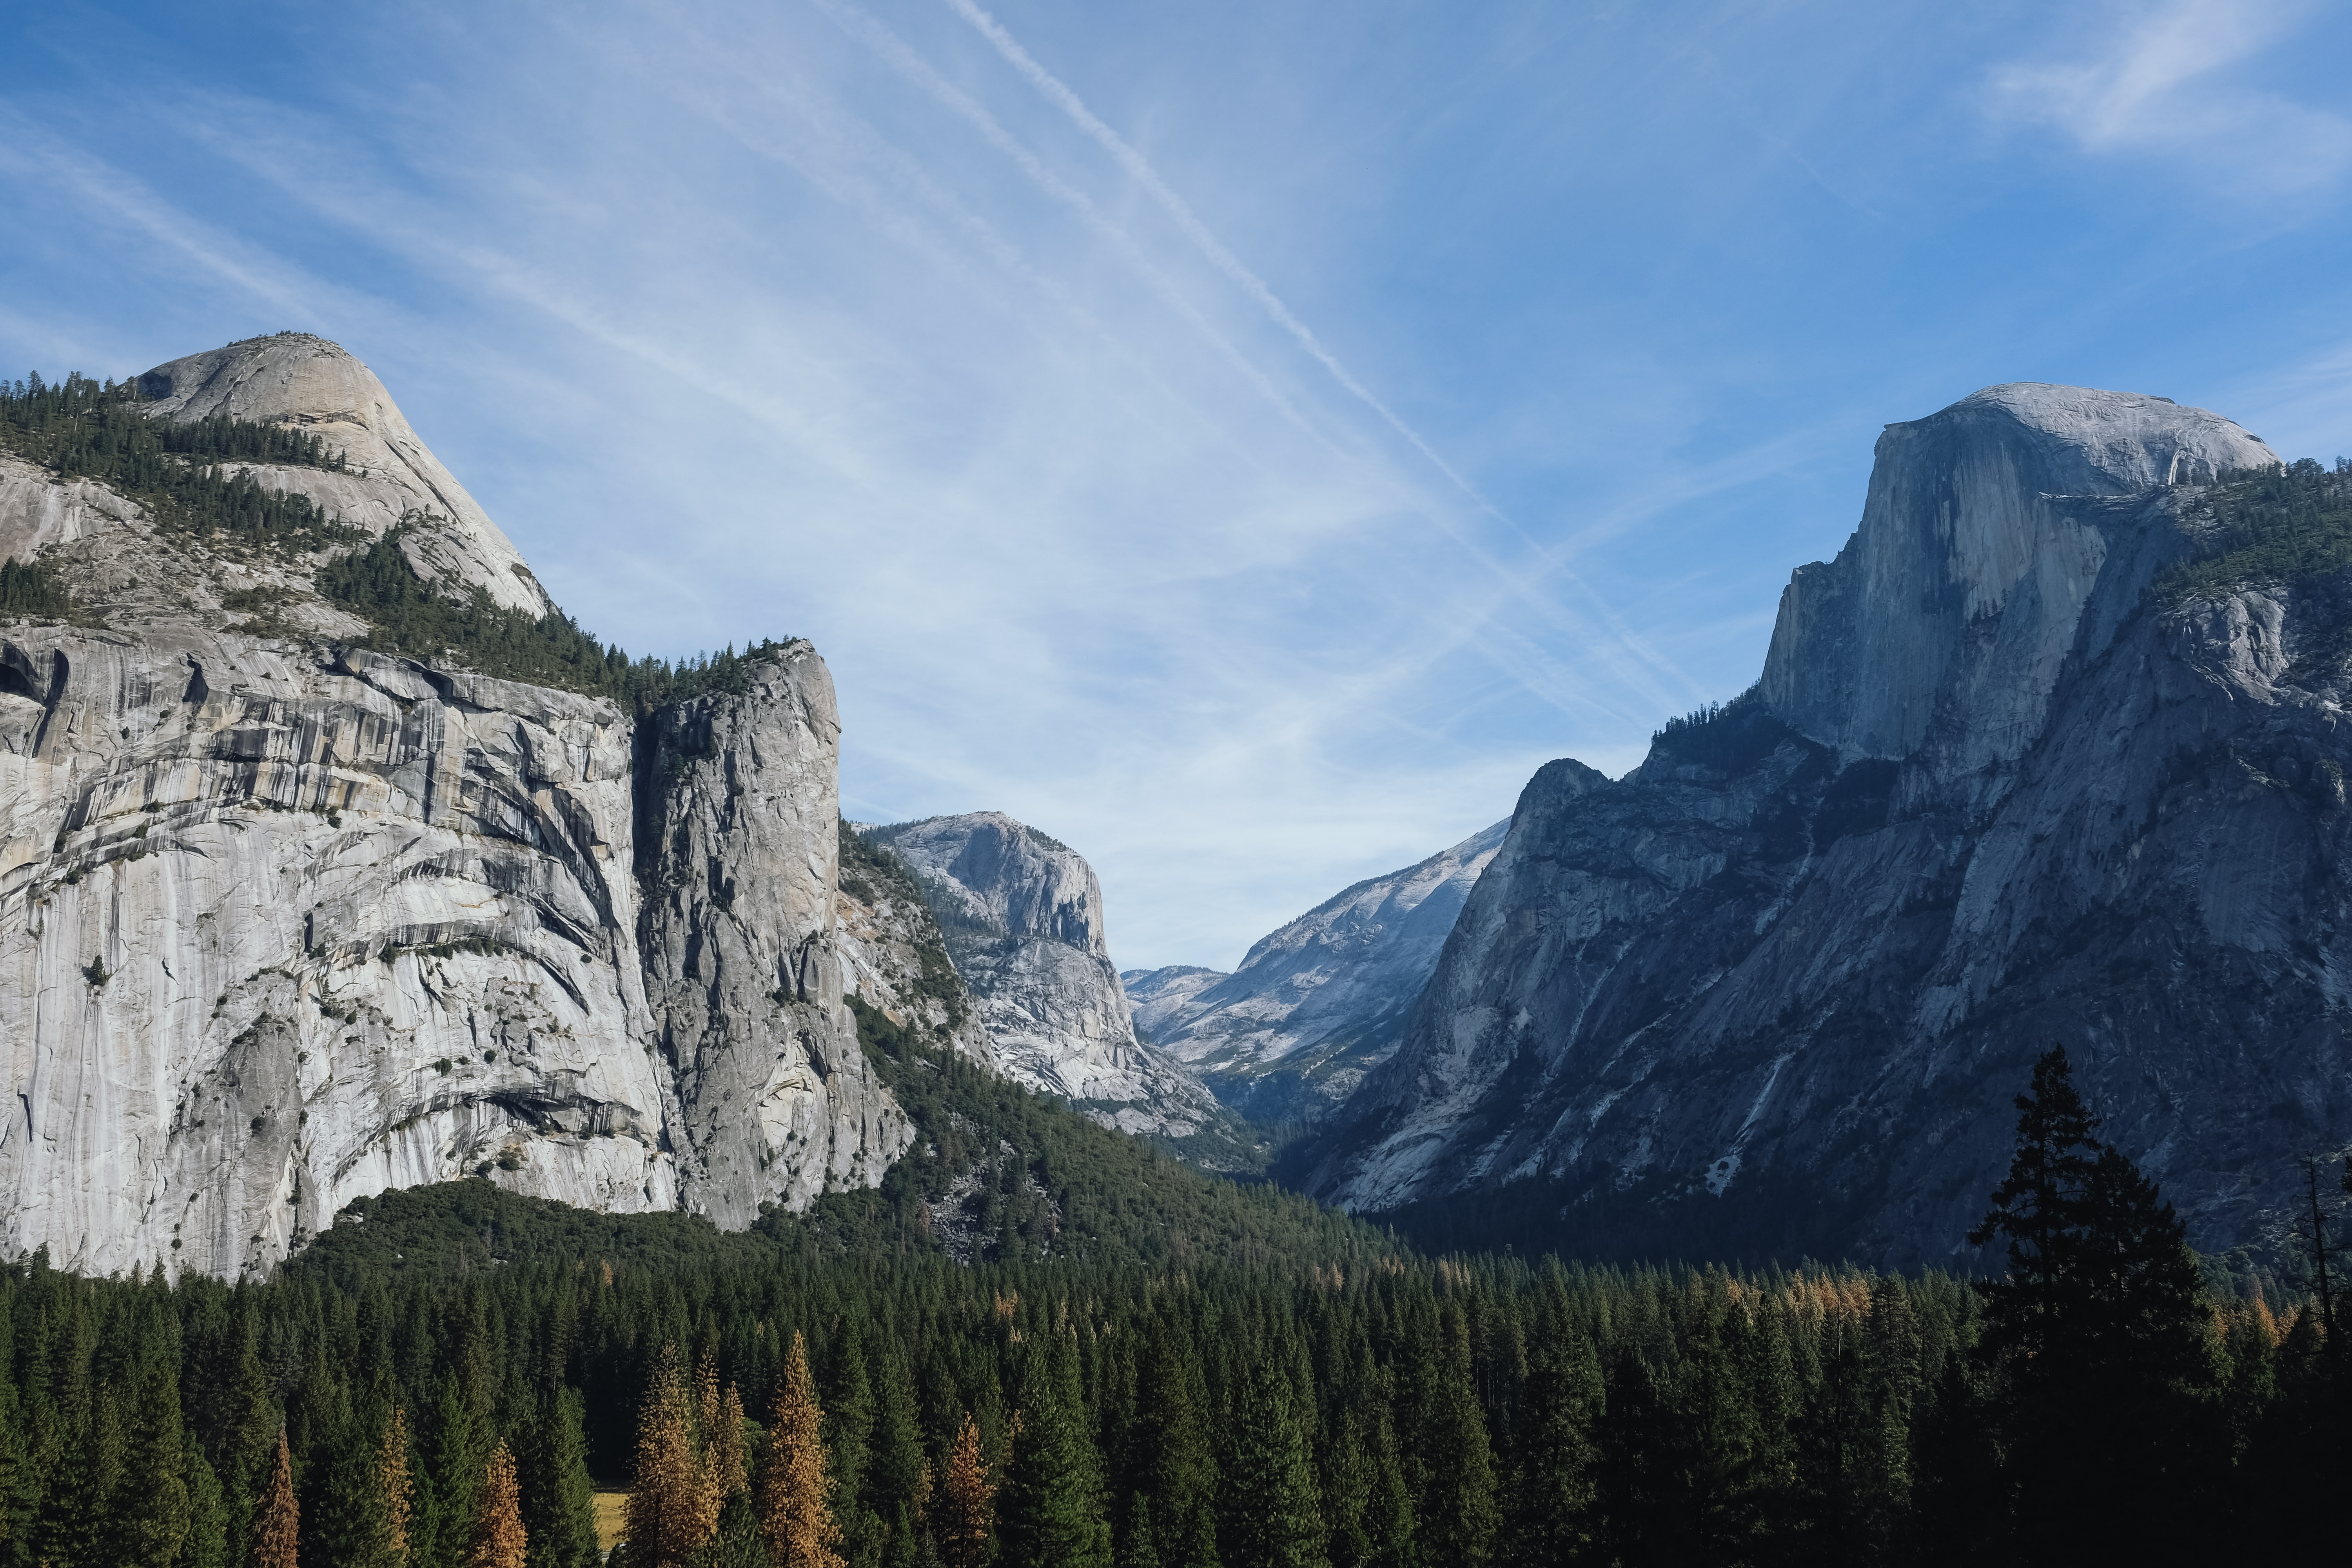 View from the floor of the Yosemite Valley on its impressive granite summits